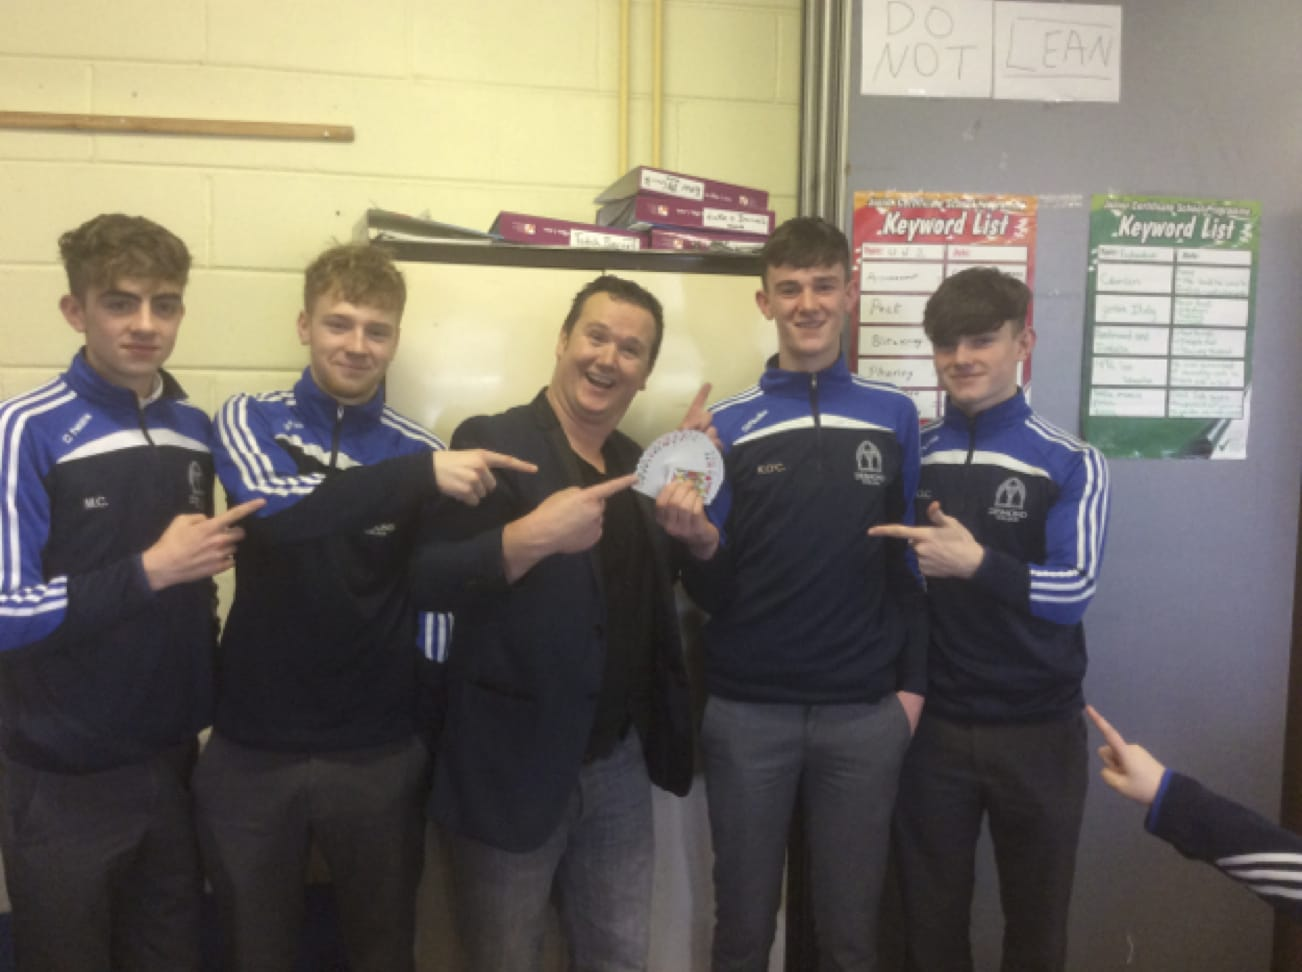 Jan 2017: Michéal Collins, Sean Walton, Kealon O Connor and Dylan O'Connell with Mathemagician Leon Anderson during Numeracy Week at Desmond College Post Primary School NewcastleWest